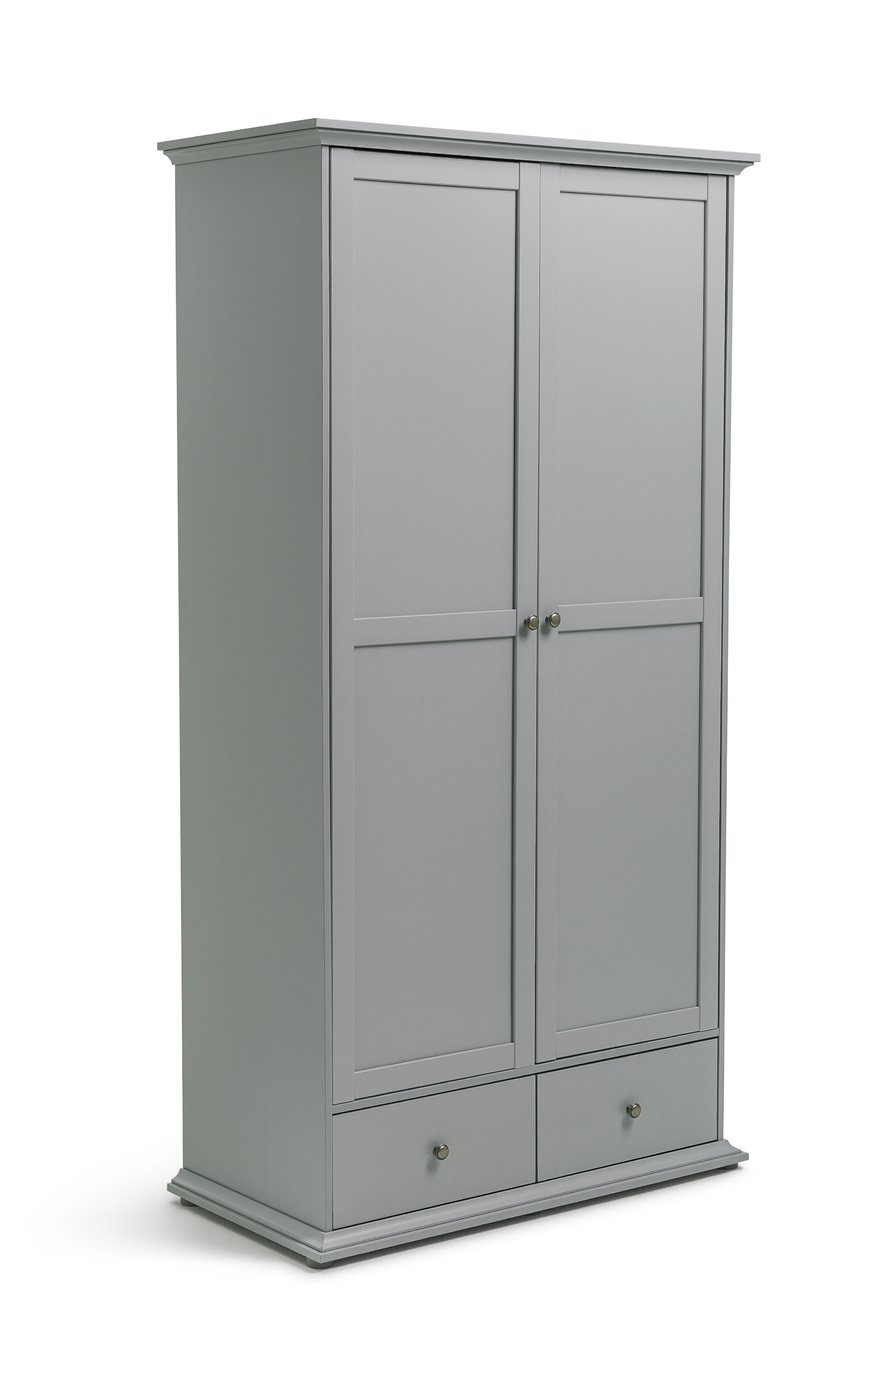 Parisot Heathland 2 Door 2 Drawer Wardrobe